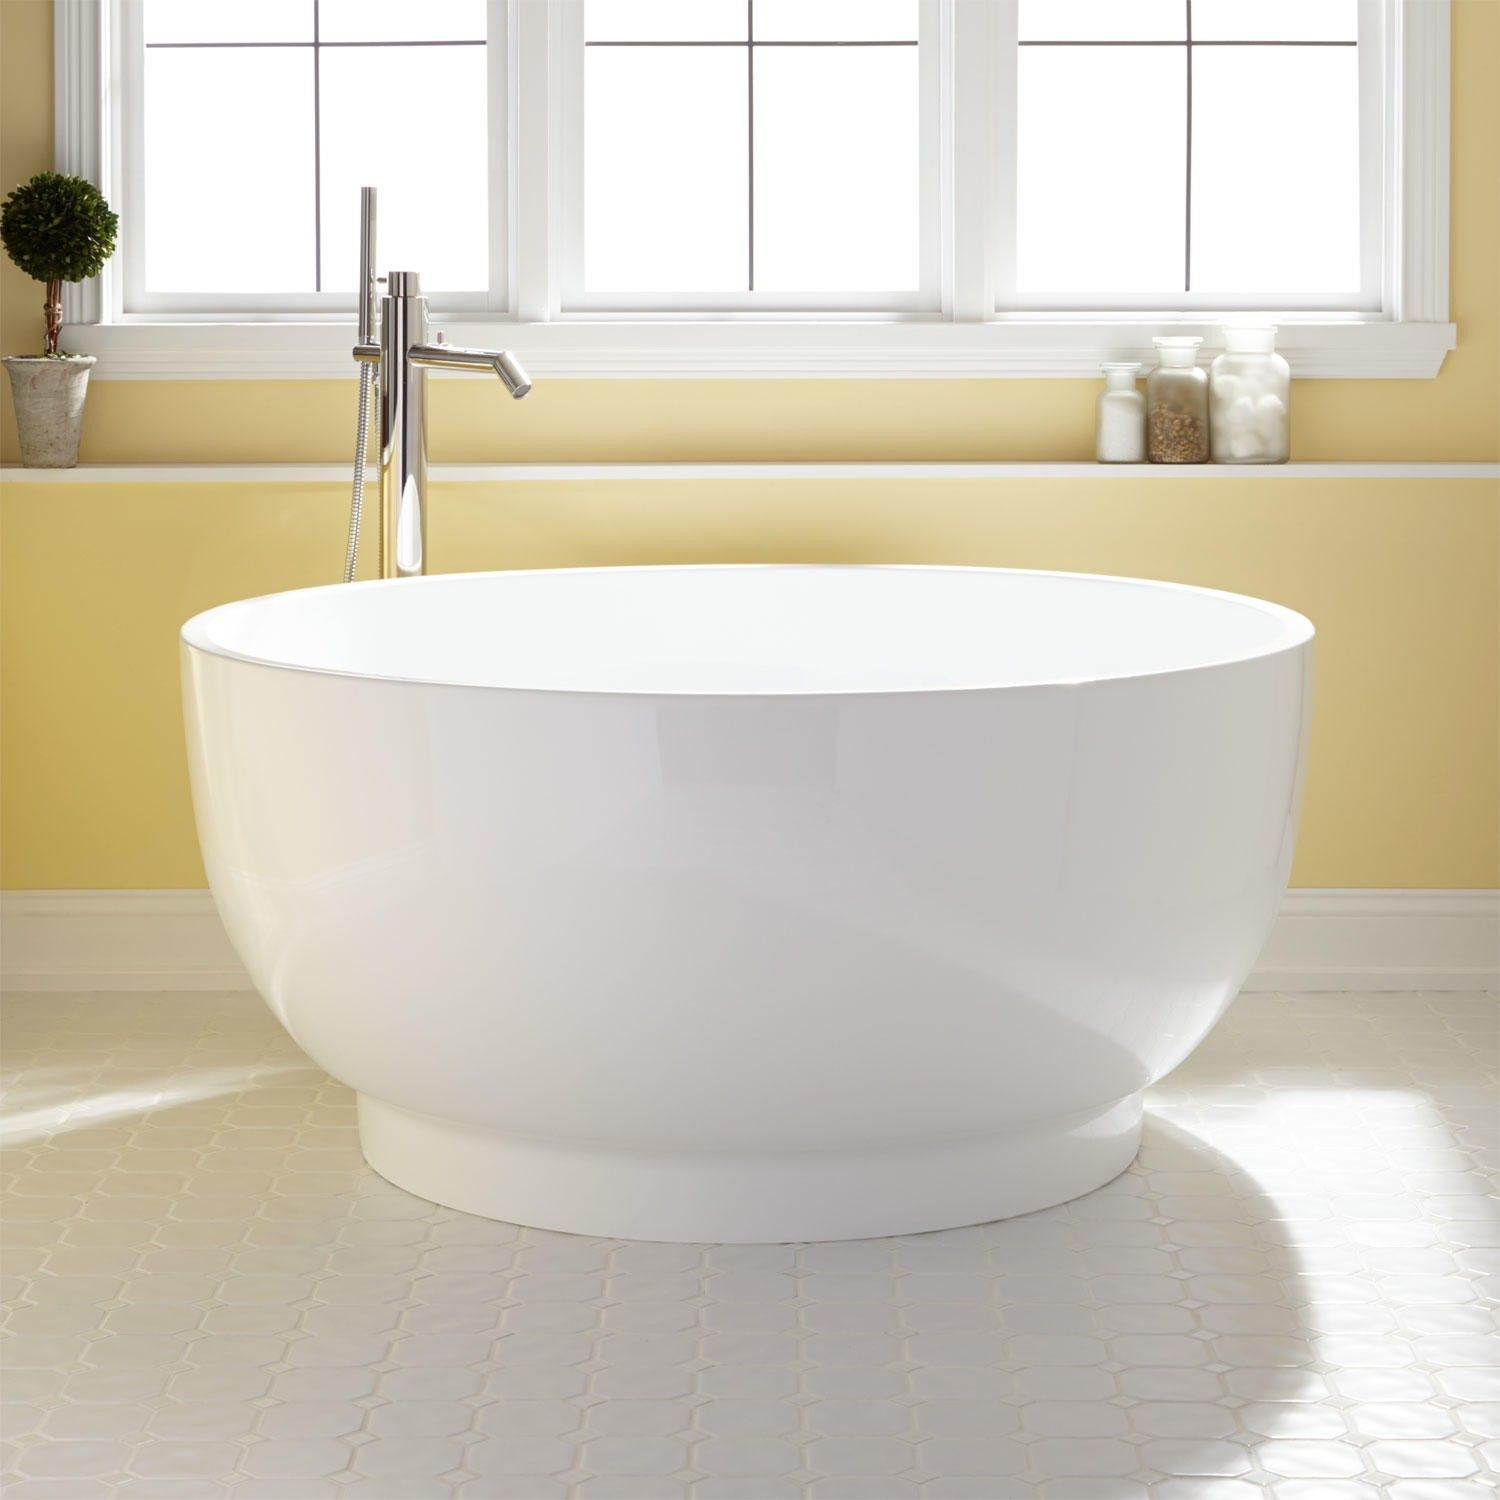 51 kaimu acrylic japanese soaking tub japanese soaking tubs tubs and bath for Small japanese soaking tubs small bathrooms